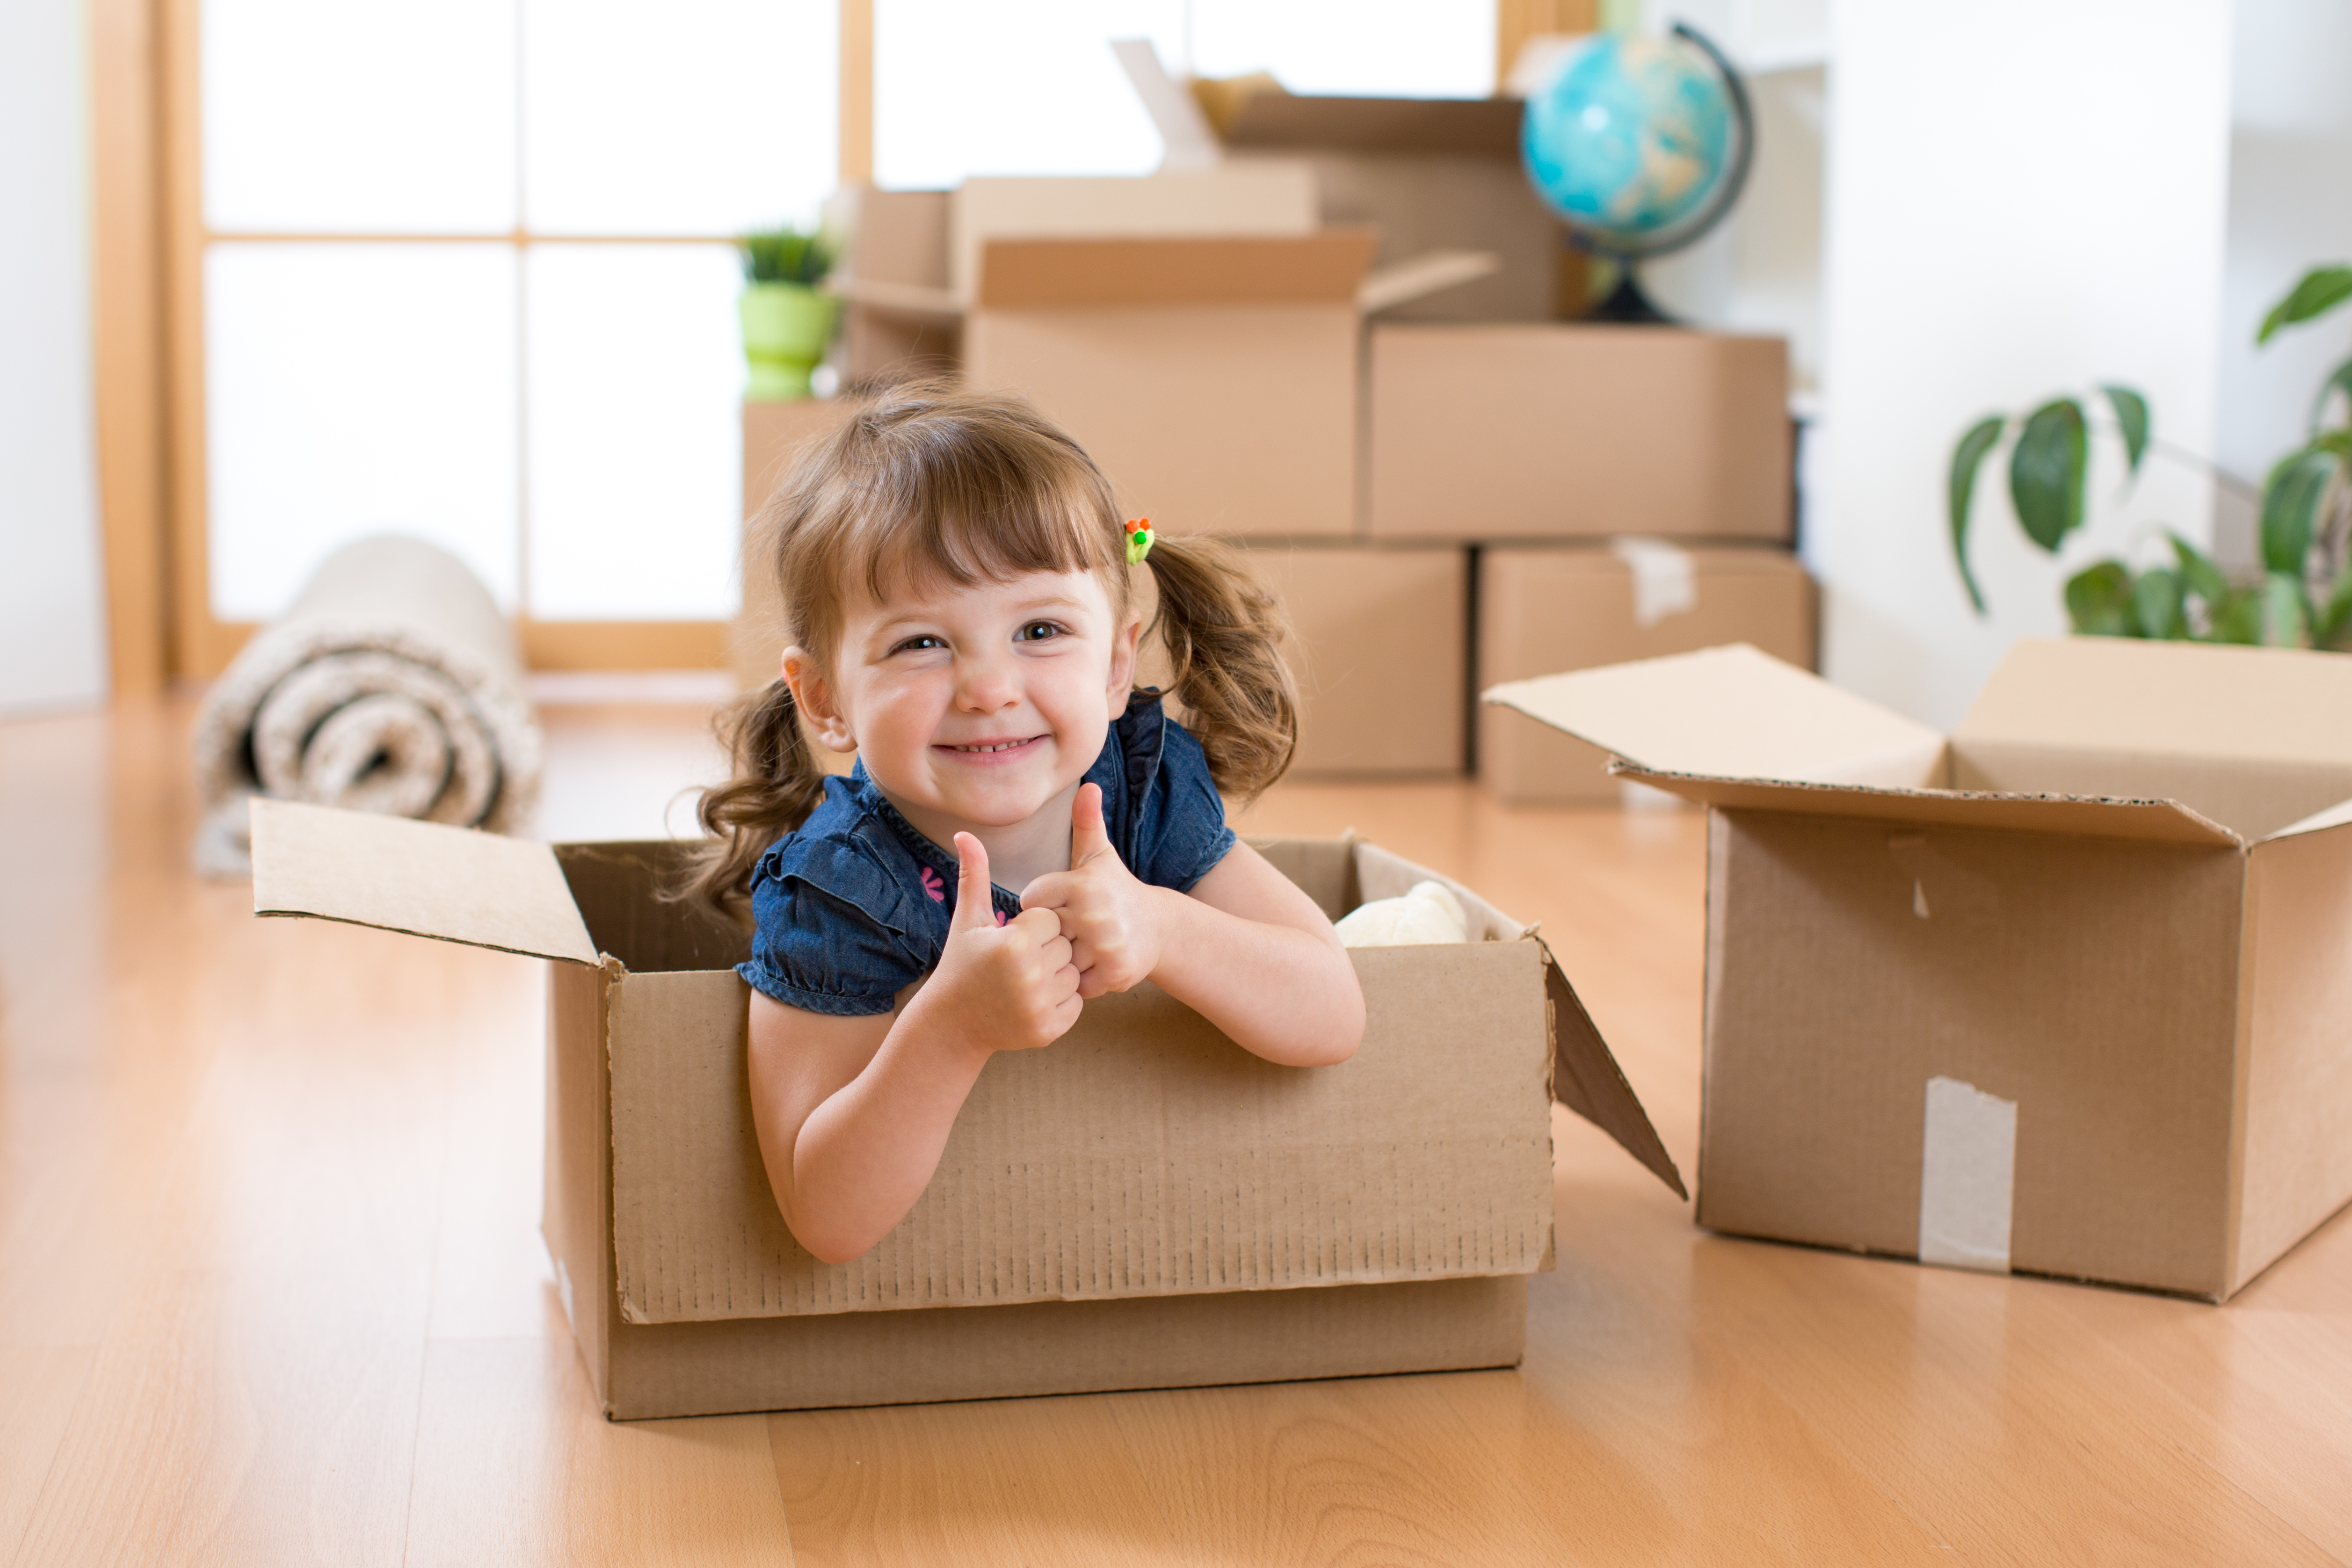 4 Ways to Help Make Moving with Kids Easier